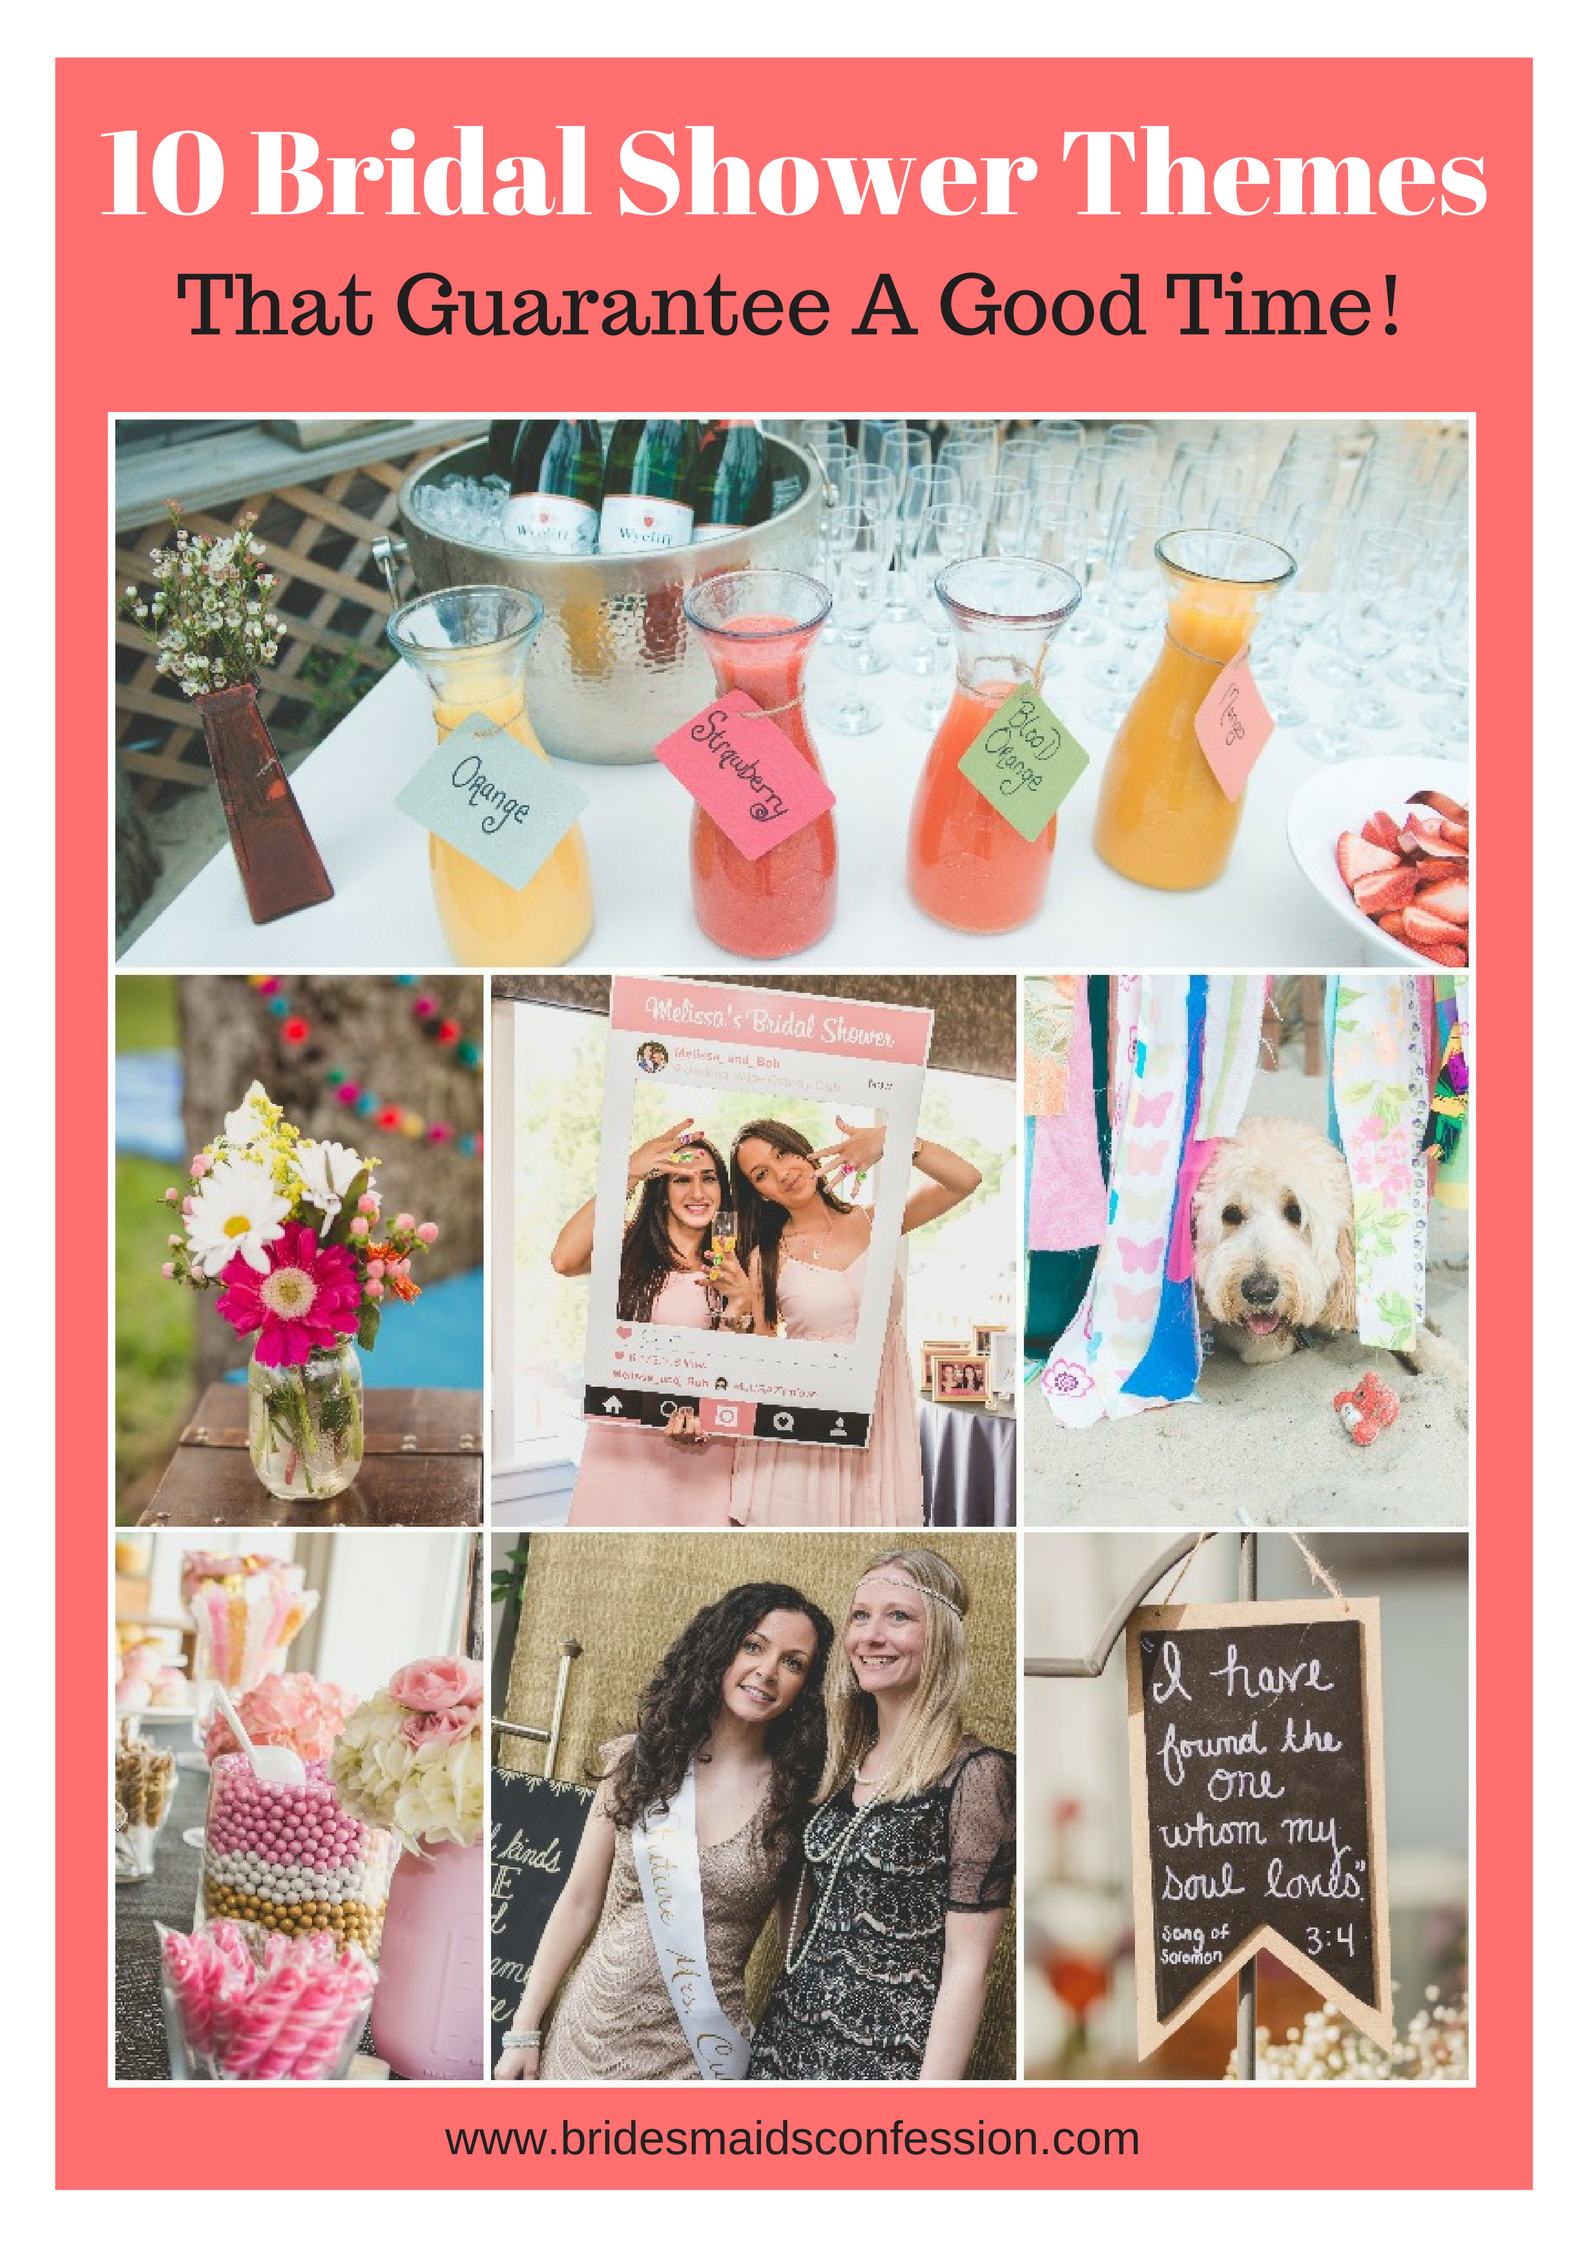 10 Bridal Shower Themes That Guarantee A Good Time!